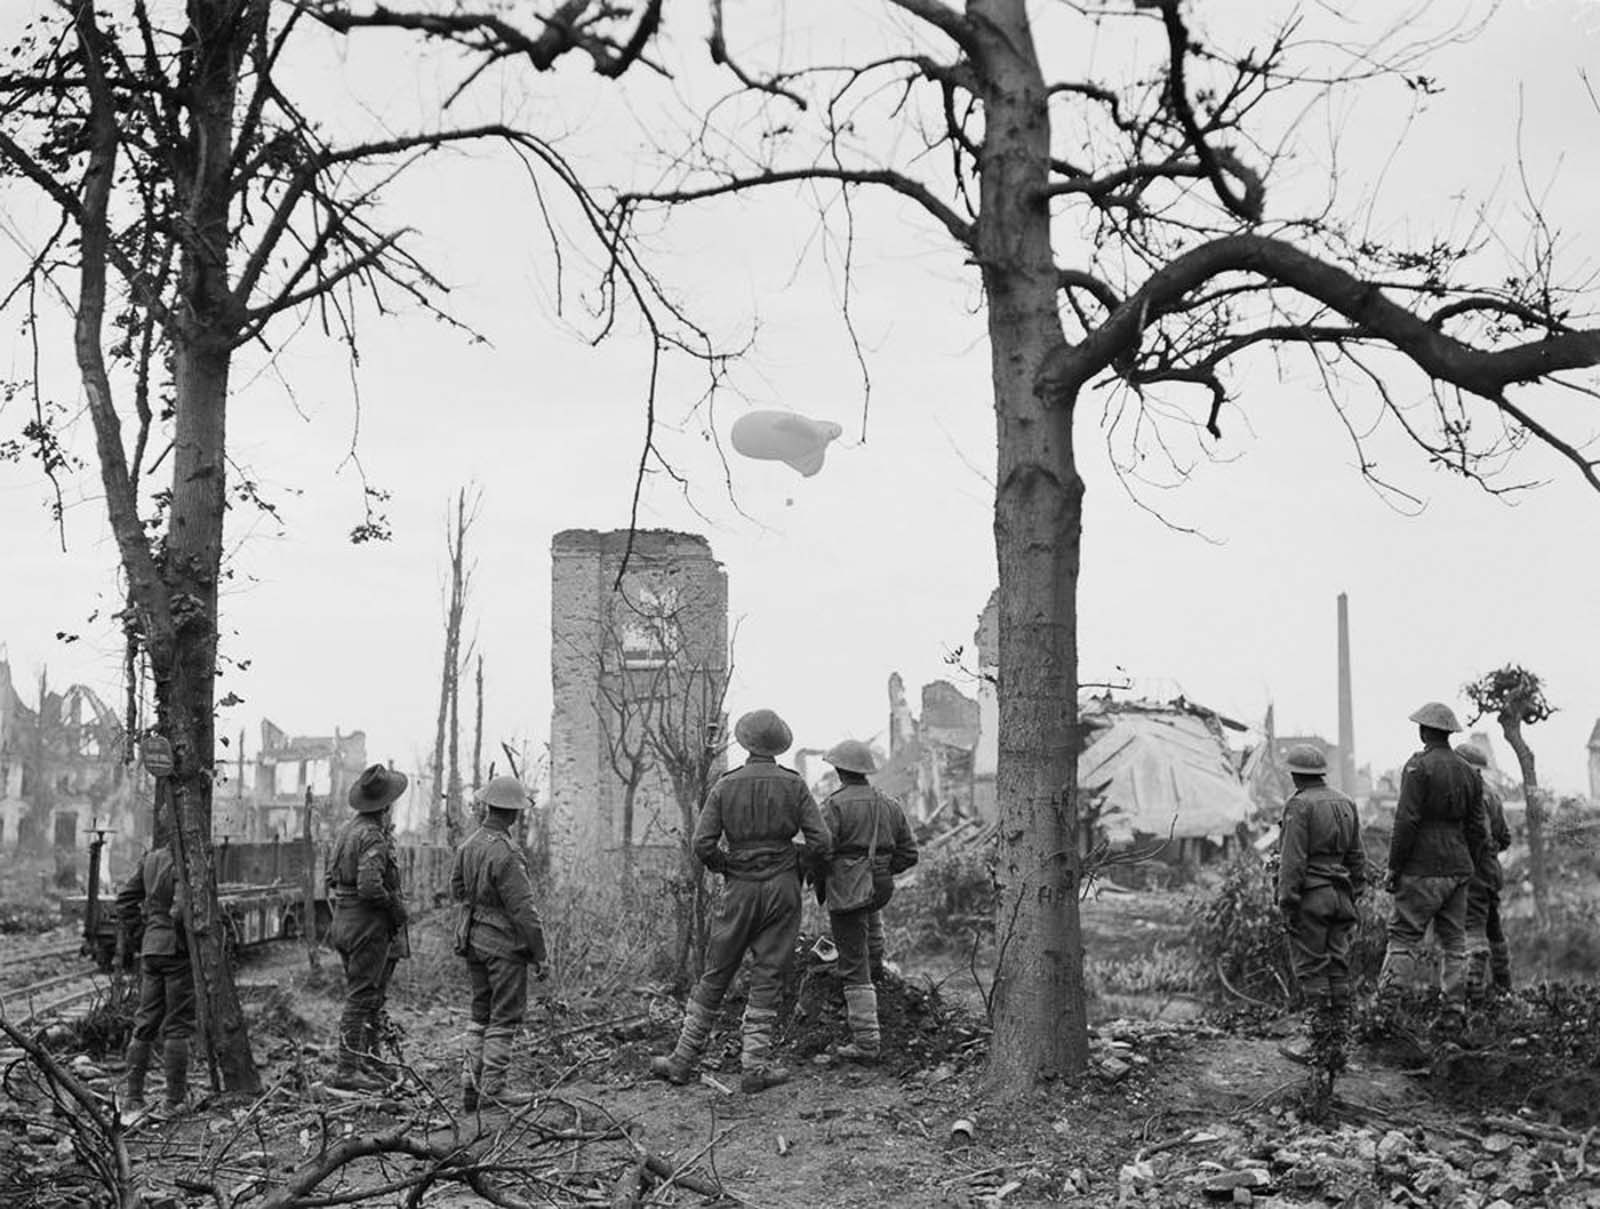 Australian soldiers watch an observation balloon ascend over Ypres, Belgium. 1917.